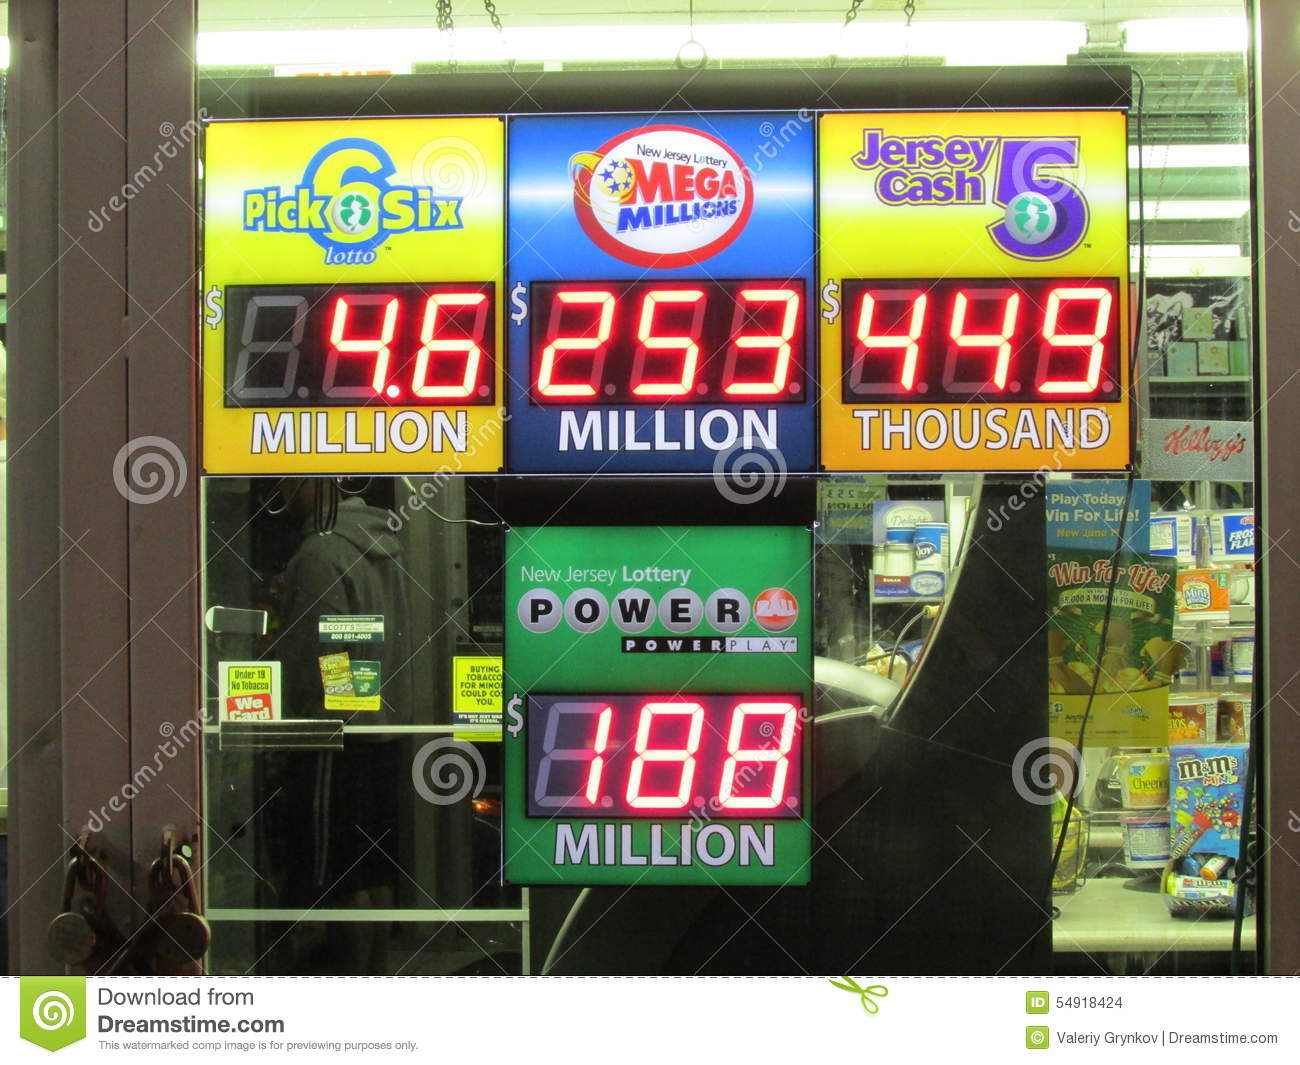 Lottery Sign In NJ With Jackpots Shown   Powerball $188,000,000